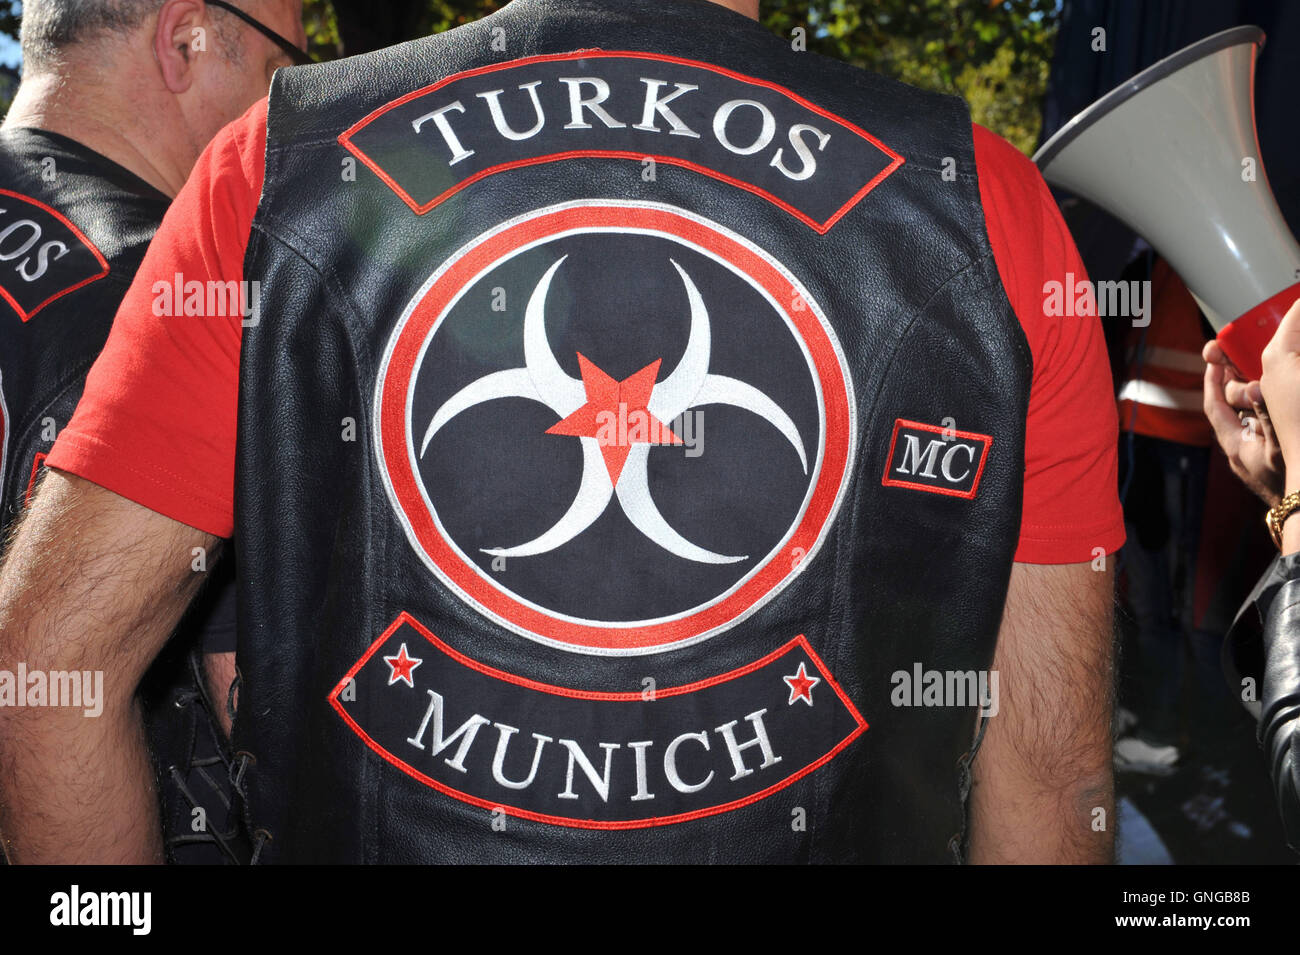 'The motorcycle club ''MC Turkos'' demonstrates in Munich against arms shipments to Kurds, 2014' - Stock Image